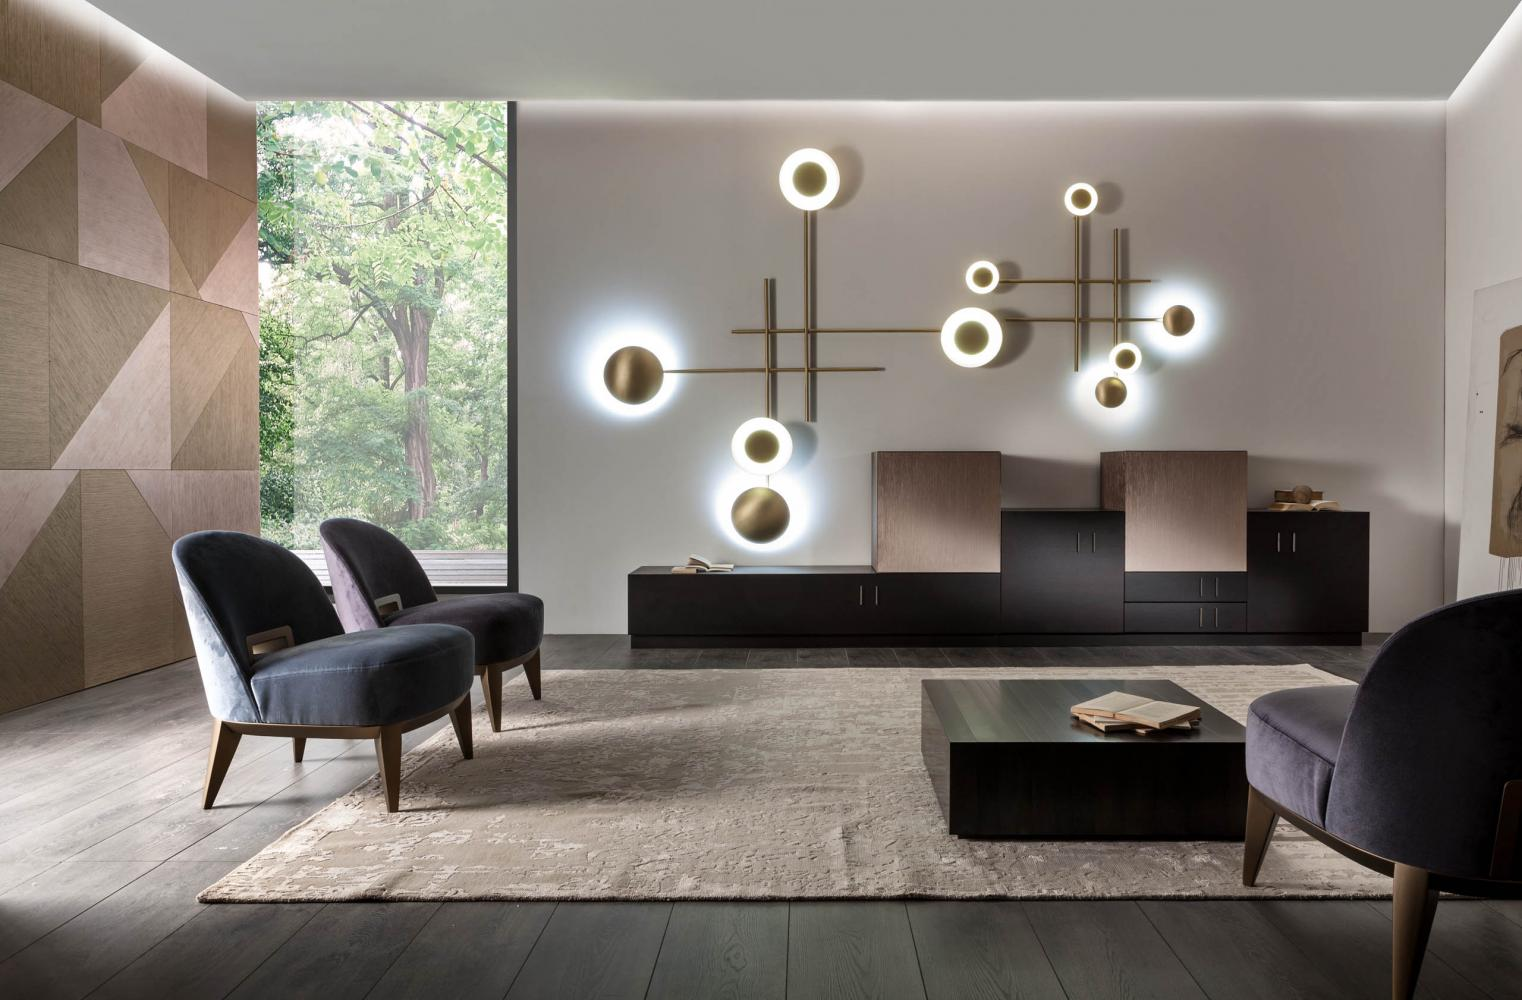 tatami decorative geometric modern wall panelling system for luxury living interior decoration